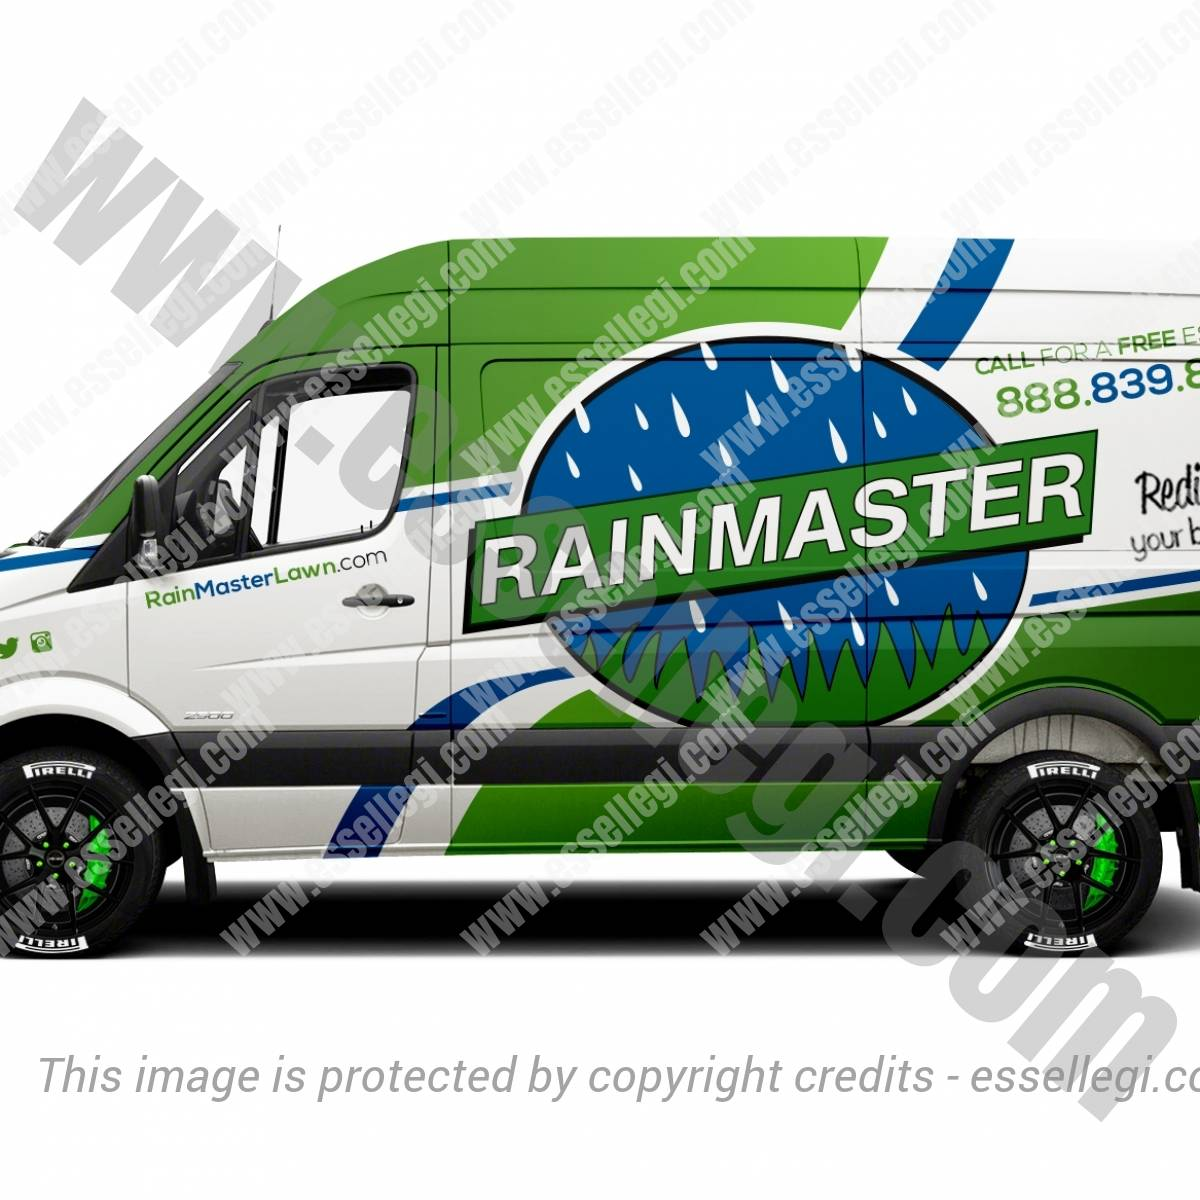 RAINMASTER | VAN WRAP DESIGN 🇺🇸